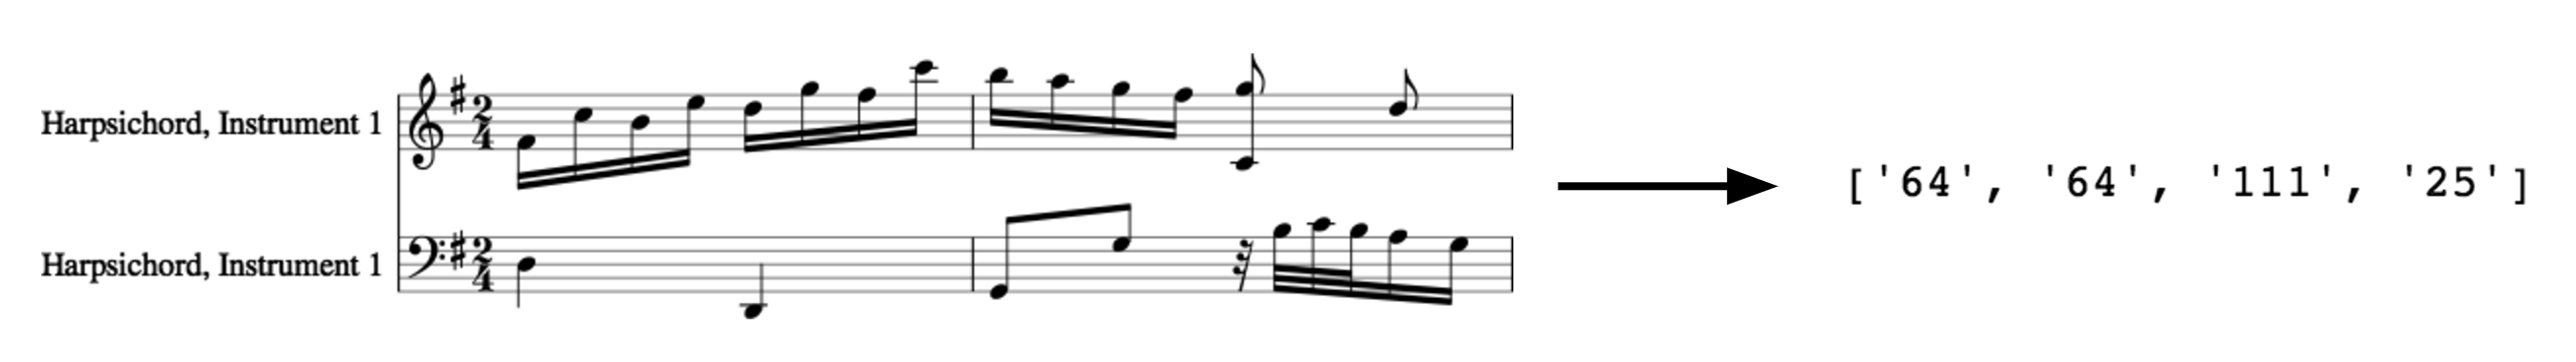 Squish all notes within length of one quarter note to a chord id number